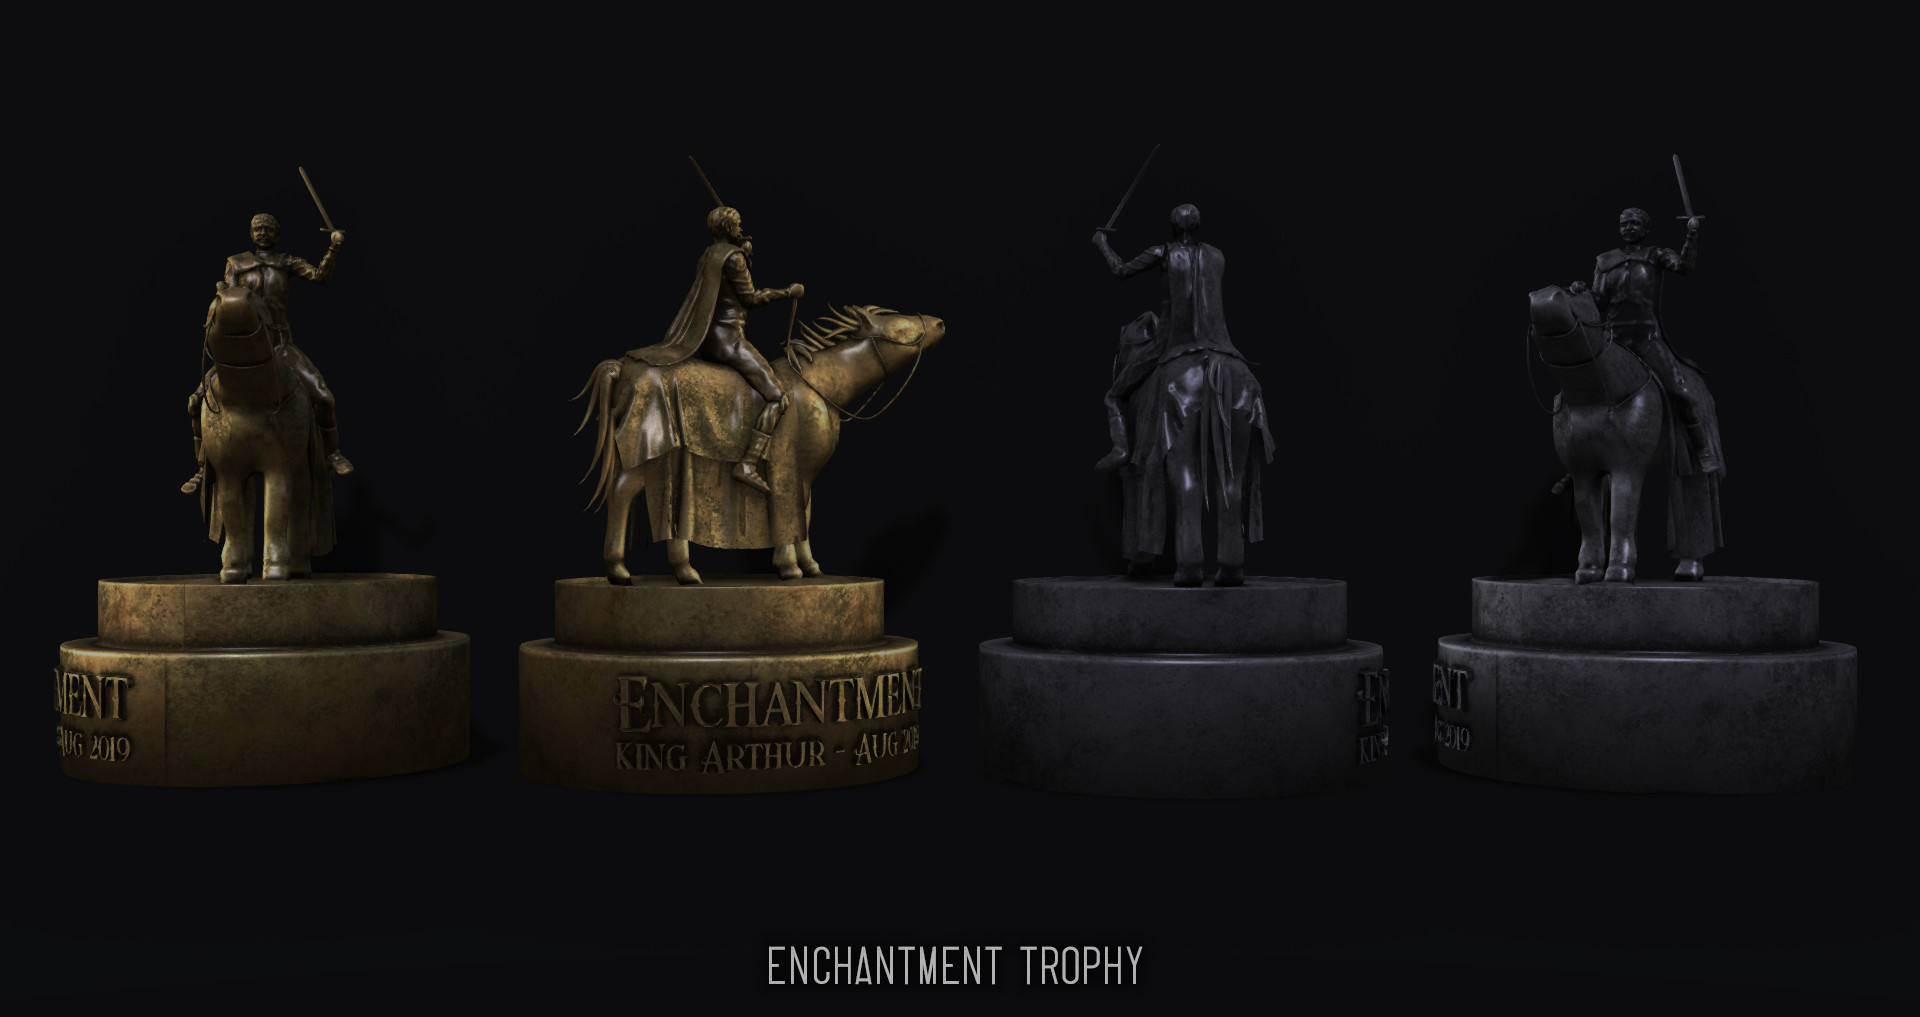 Enchantment Trophy